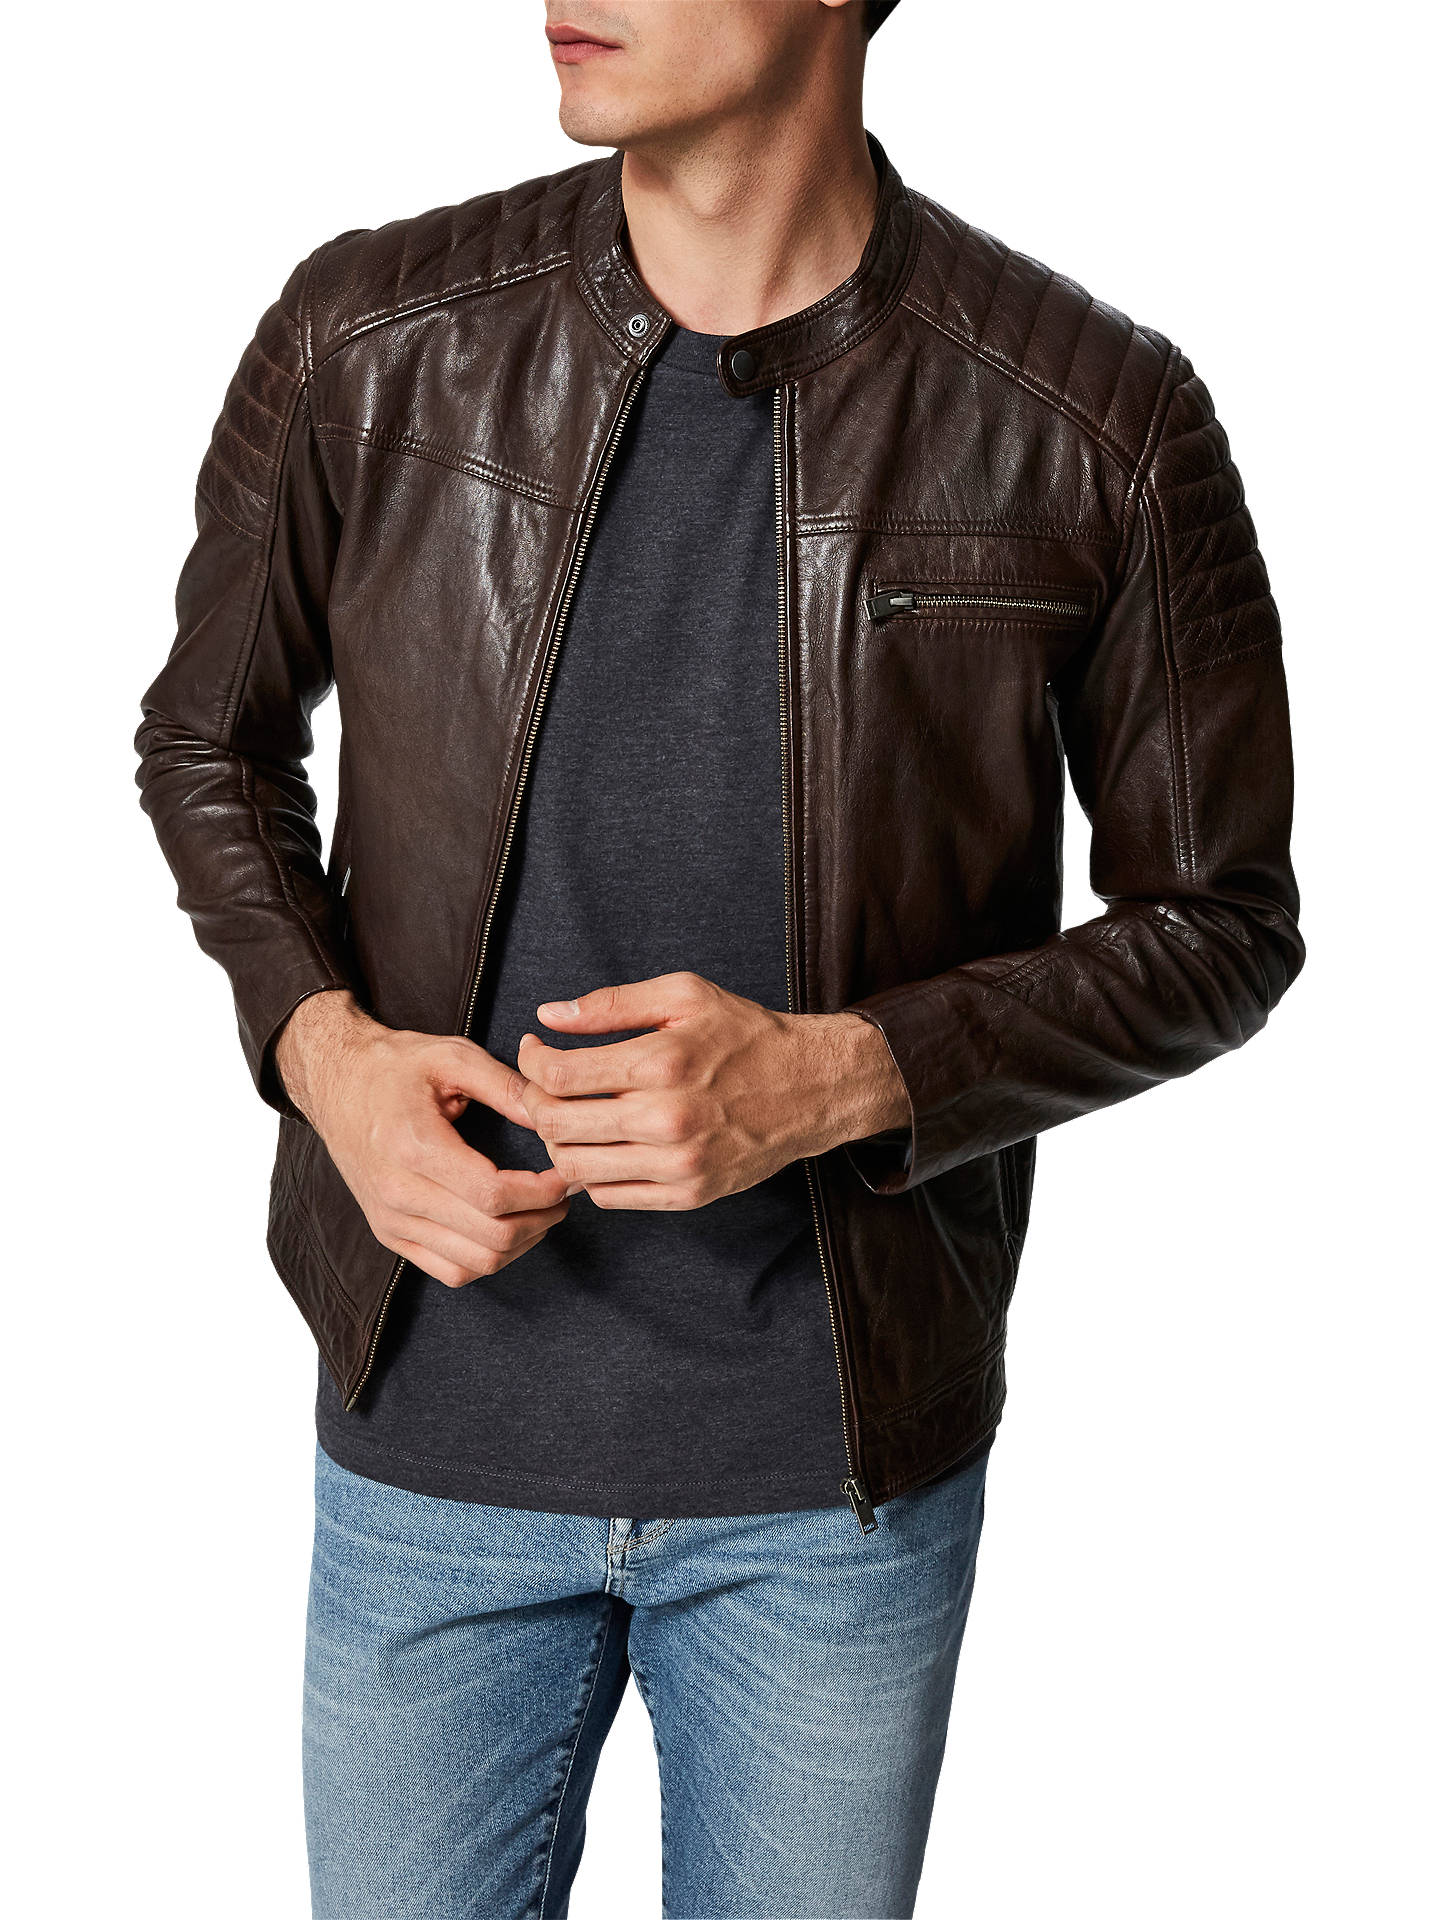 0464a24d6 Selected Homme Leather Jacket, Brown at John Lewis & Partners